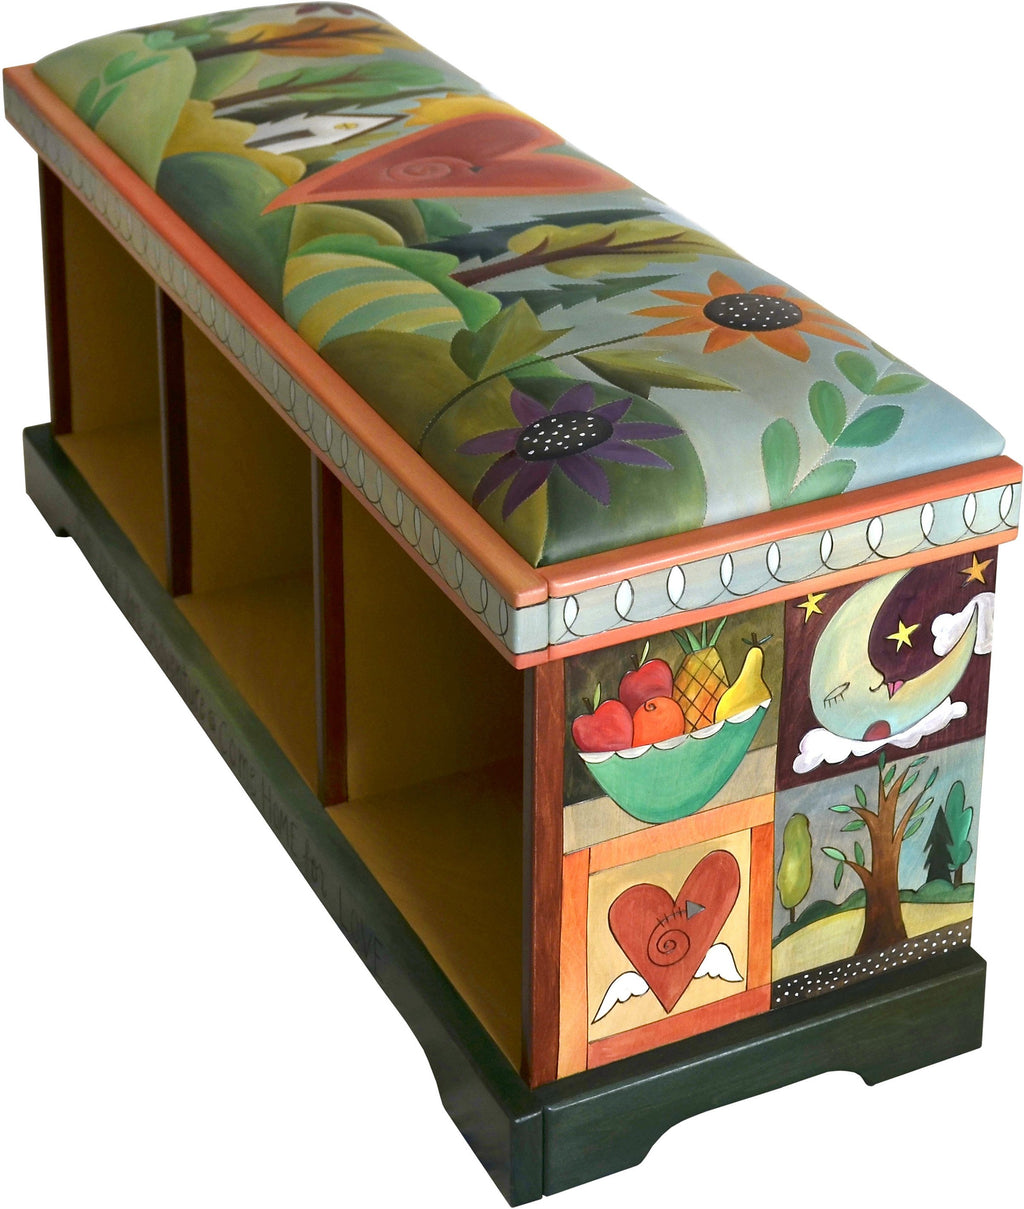 Storage Bench without Boxes, Leather Seat –  Gorgeous garden landscape storage bench with hand stitched leather seat